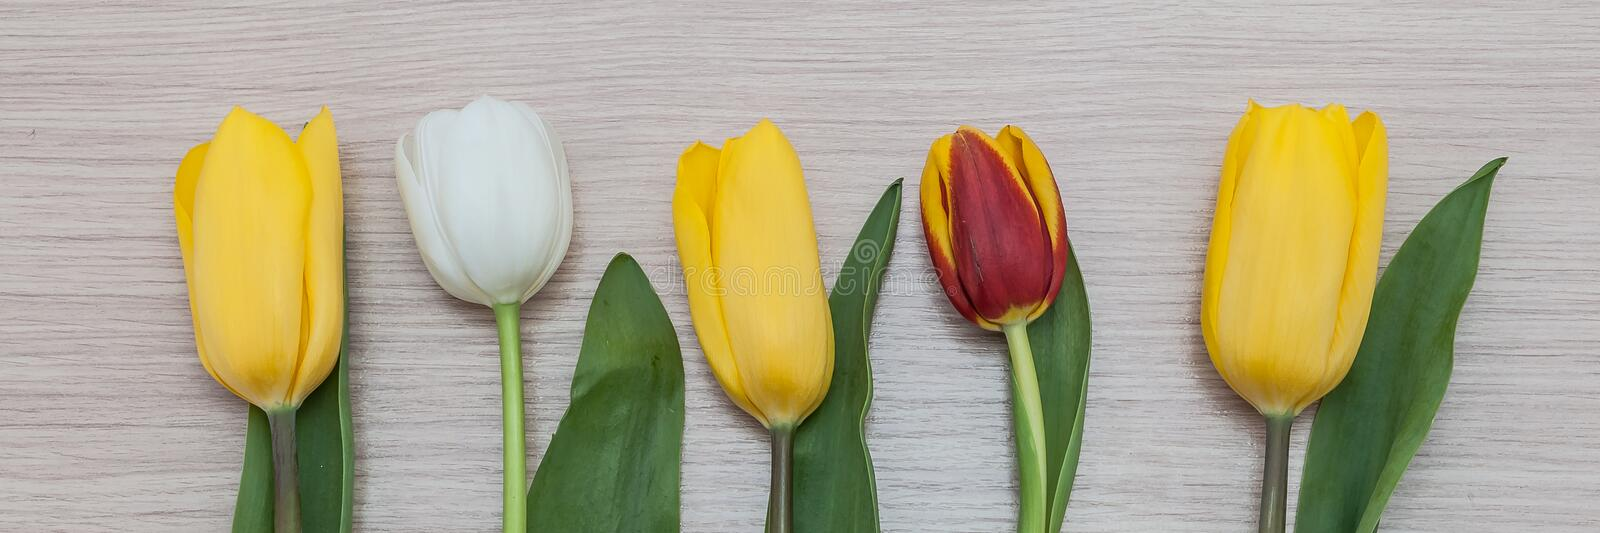 Three yellow, one white and one red tulip in a row on a background of wood. stock photo